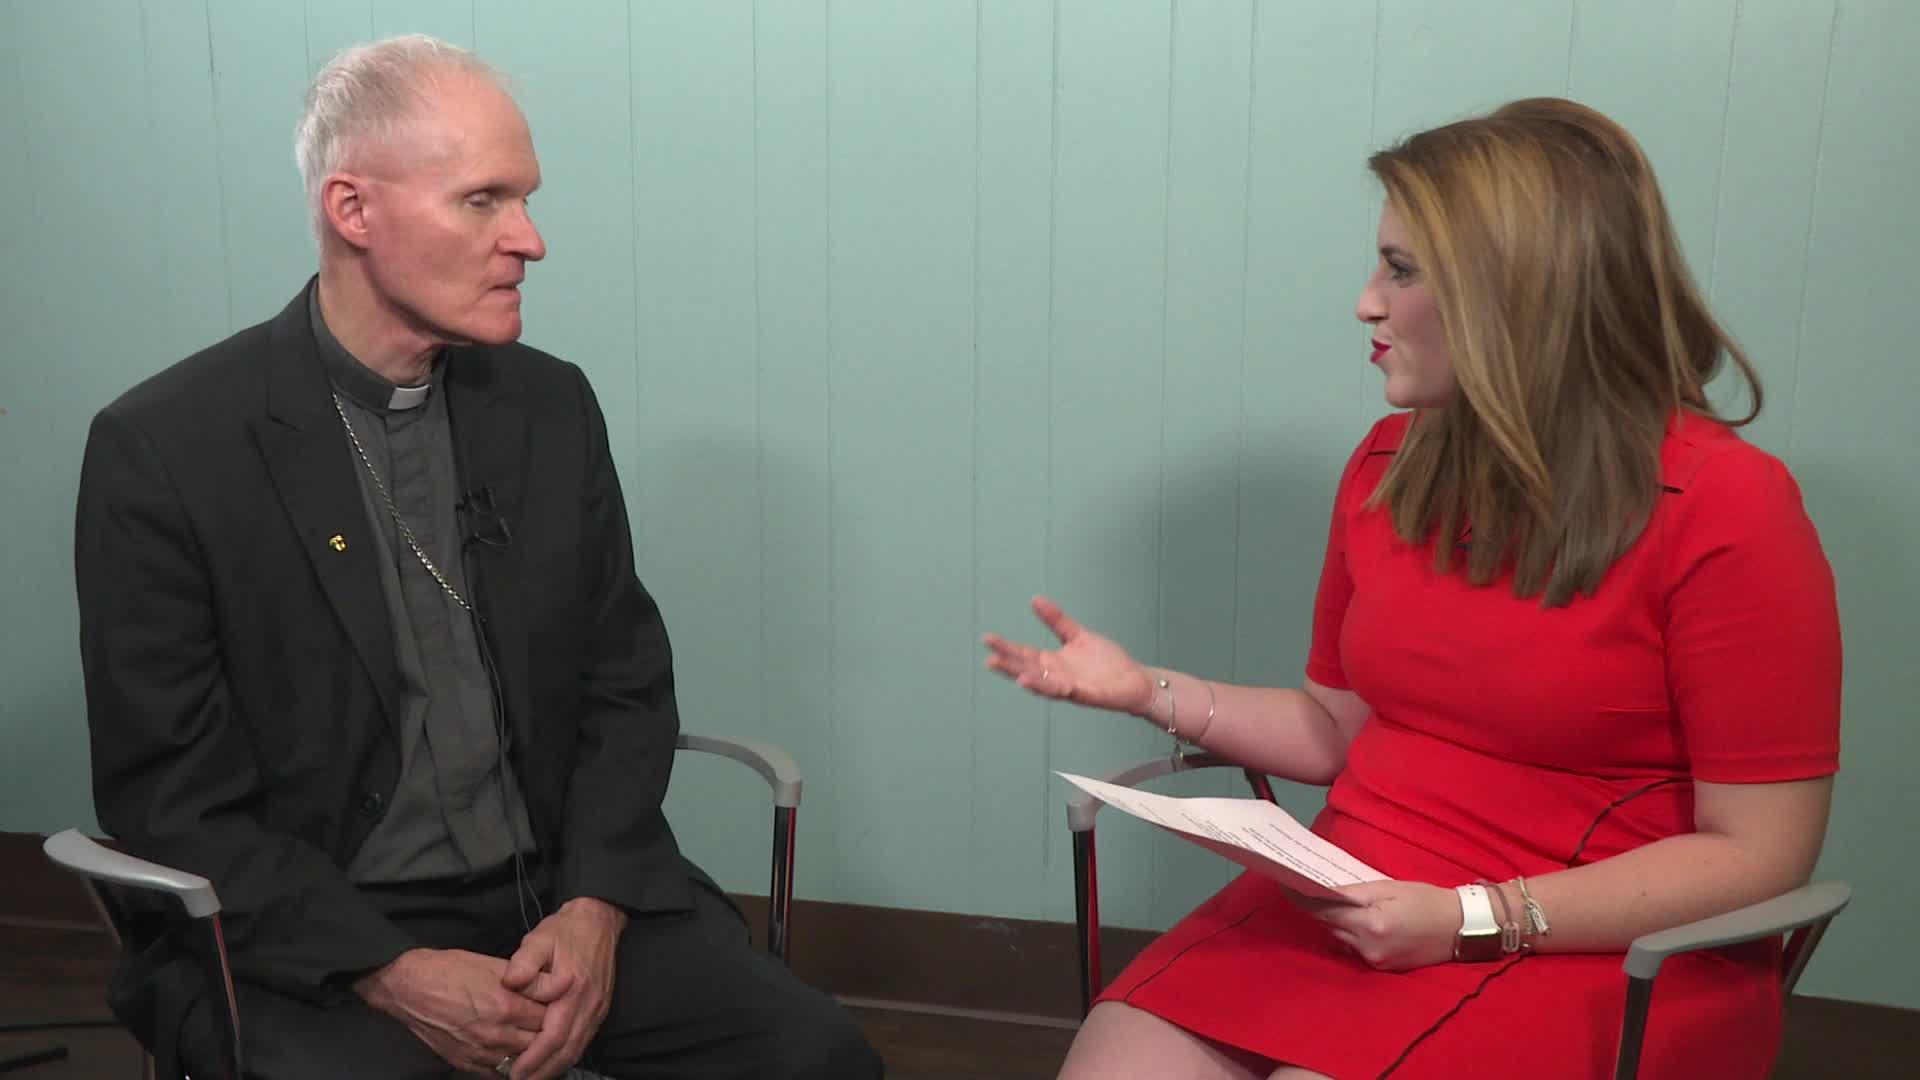 Digital Exclusive: One on One with newly appointed Bishop of The Diocese of Wheeling-Charleston Bishop Michael Brennan